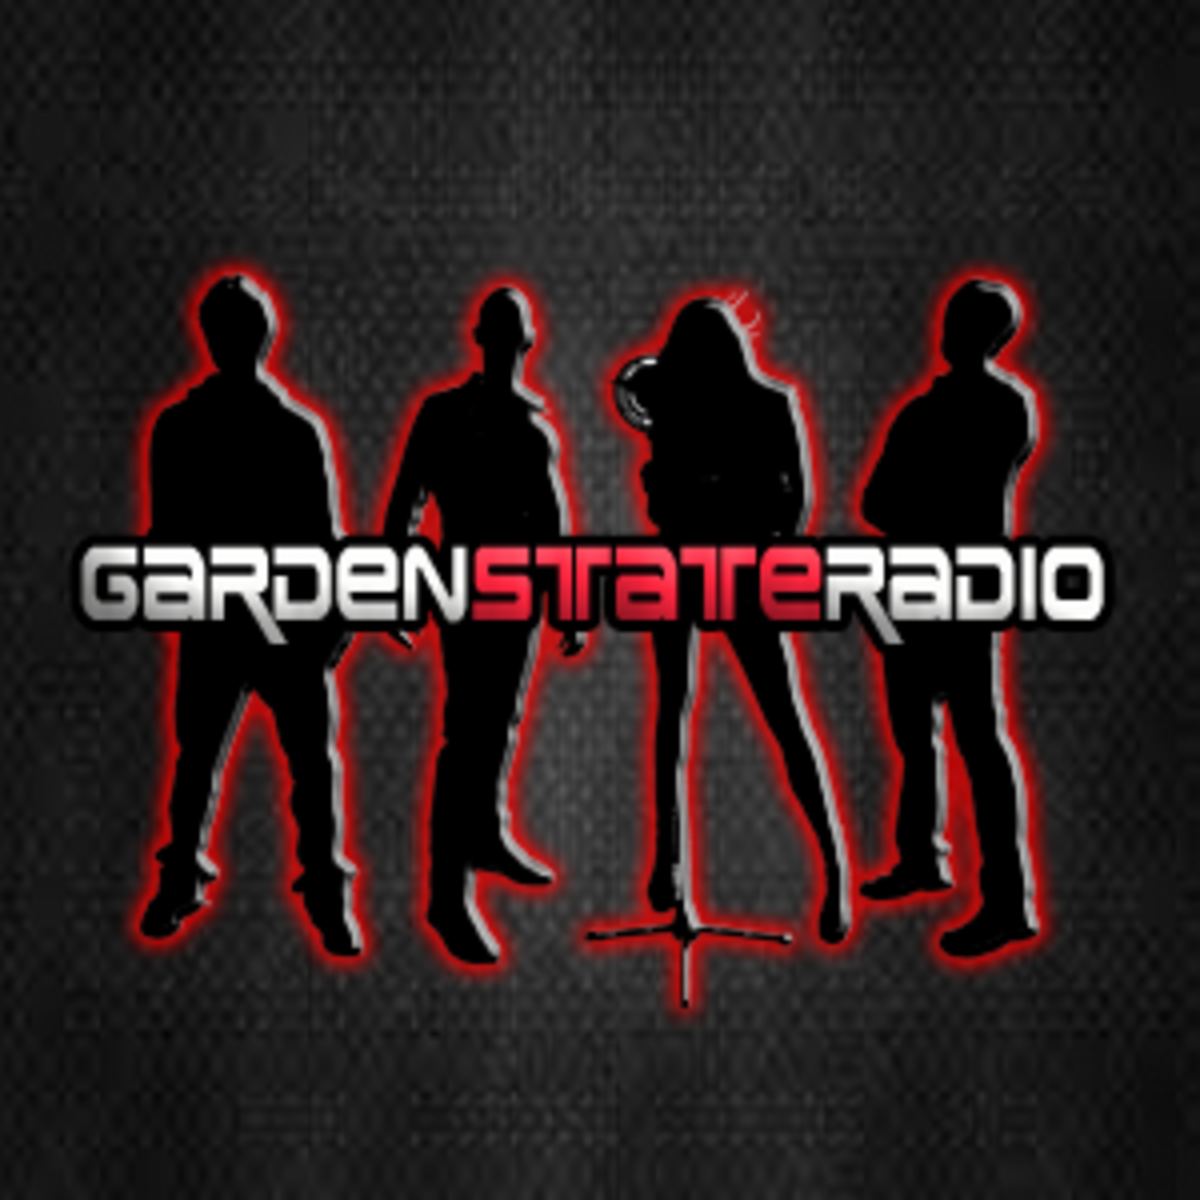 Garden State Radio - Cover Band Central's